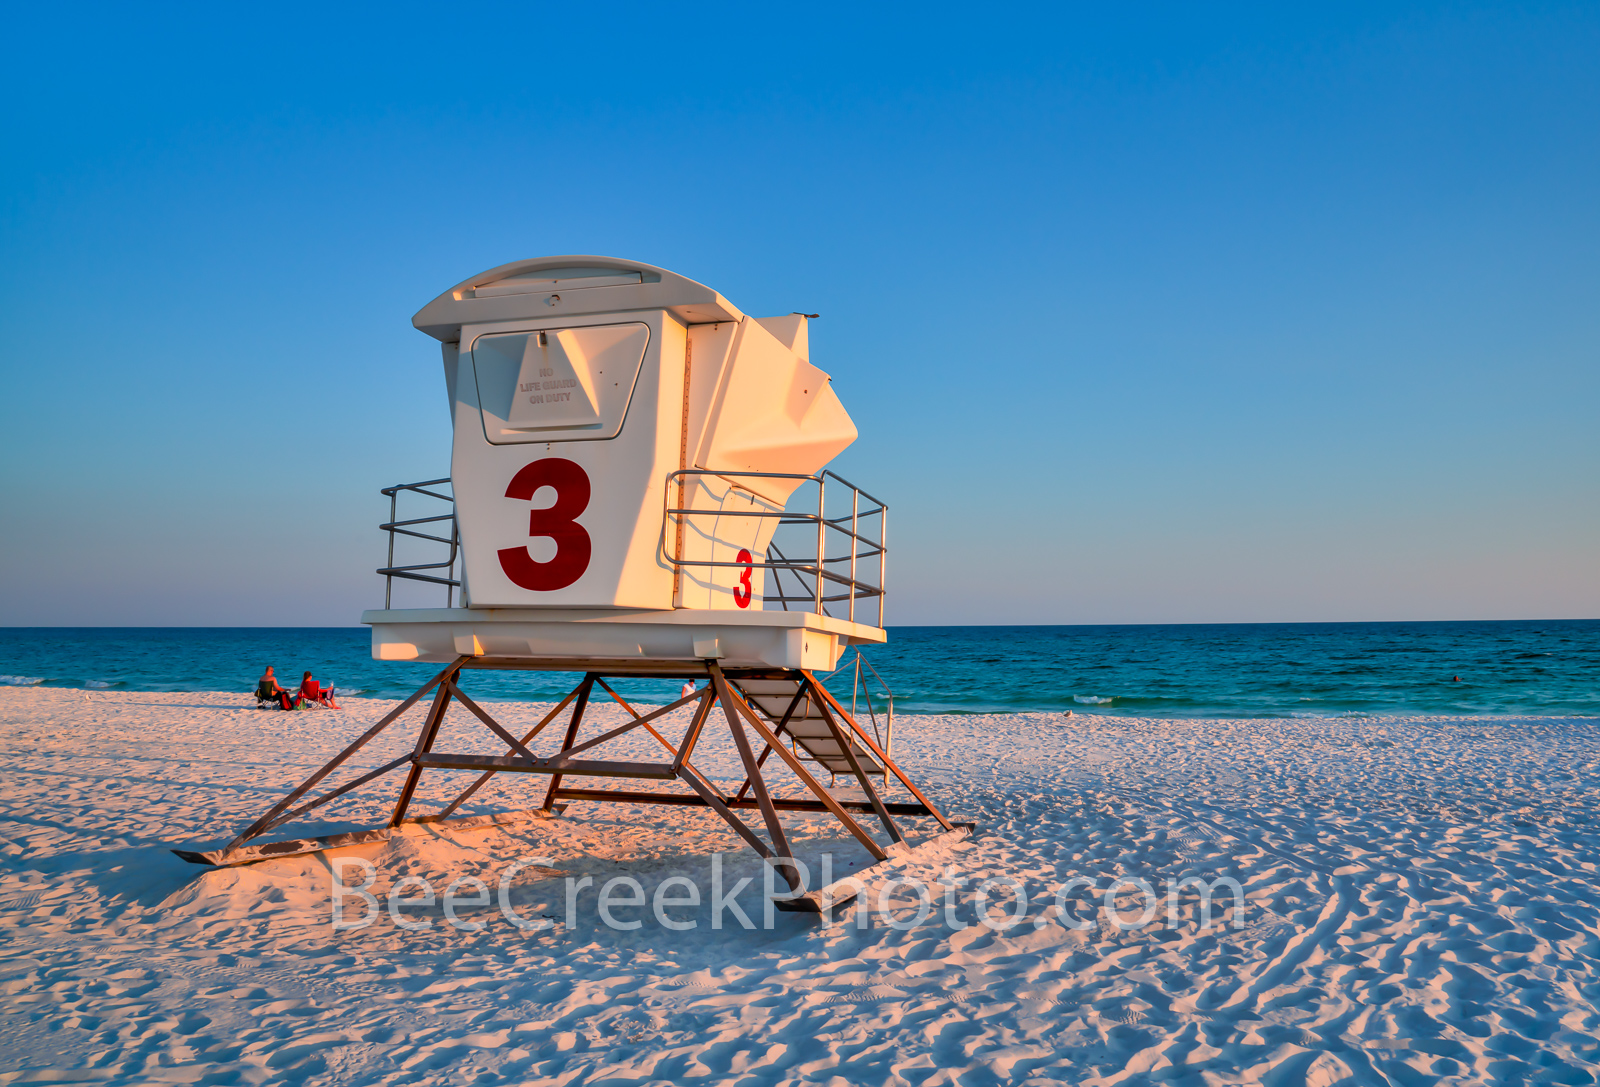 Pensacola Beach Lifeguard Station - Pensacola beach right before the sunset over the gulf with lifeguard station on the beach...